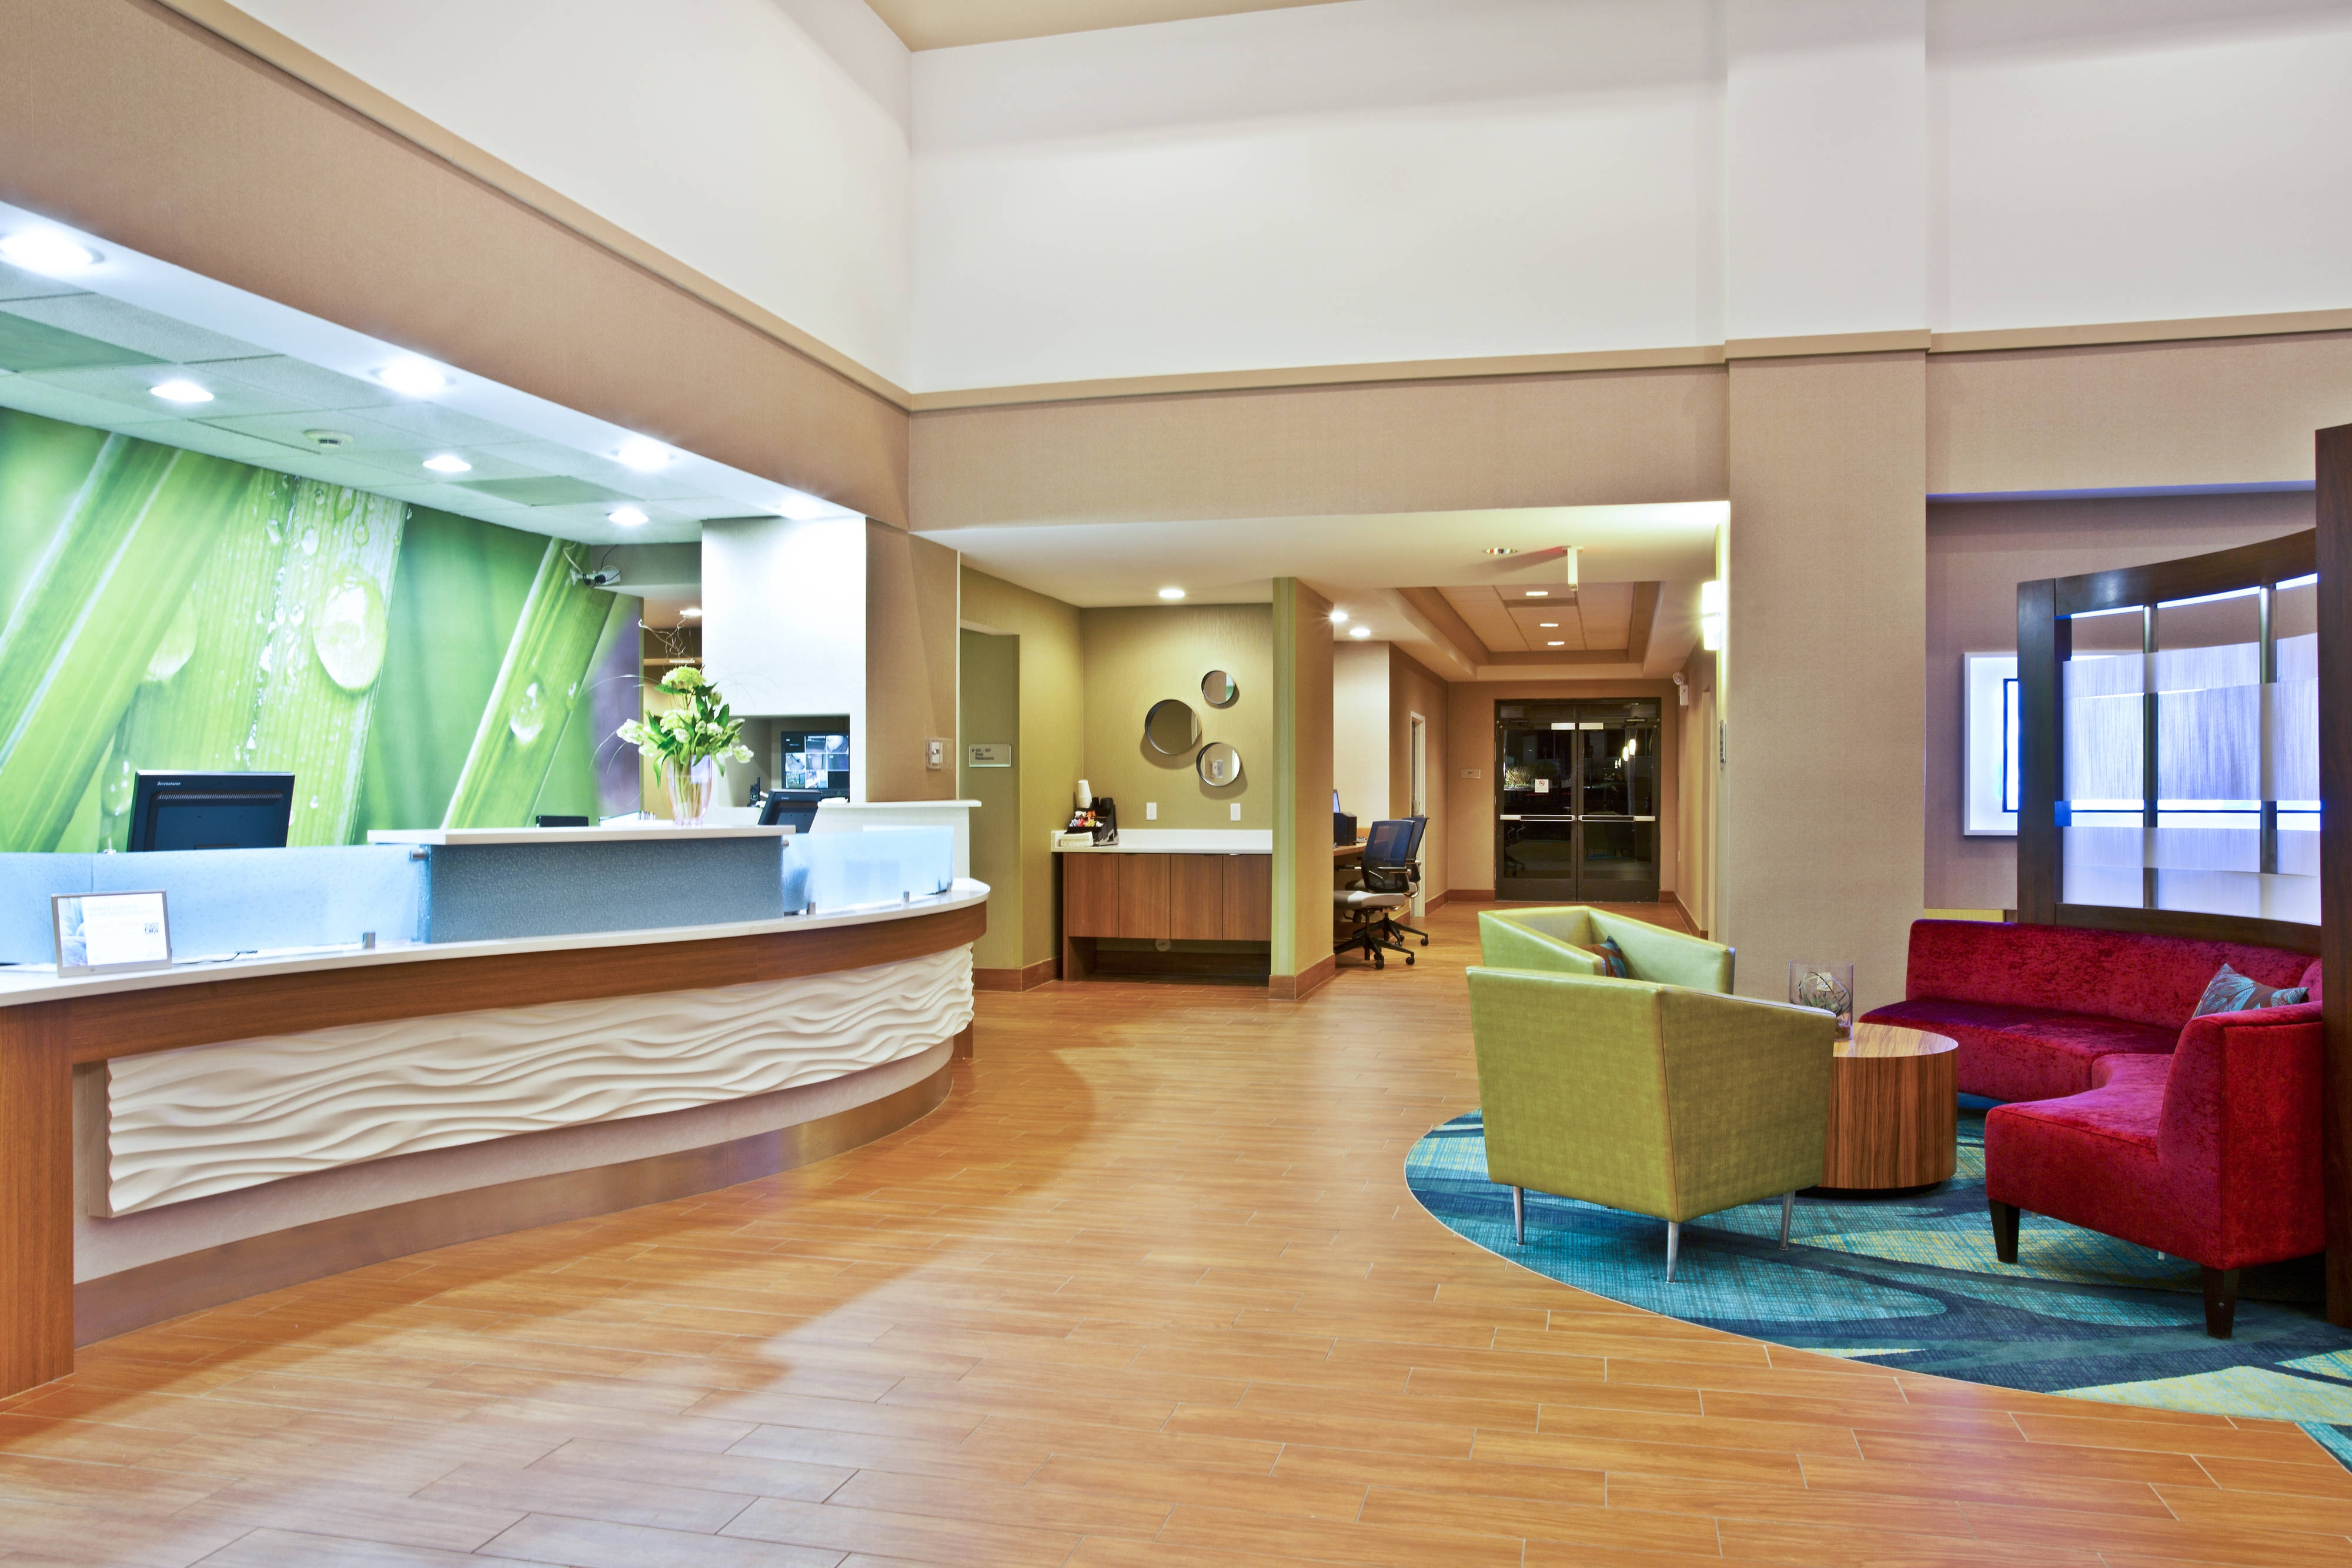 SpringHill Suites Chicago Southwest at Burr Ridge/Hinsdale Lobby